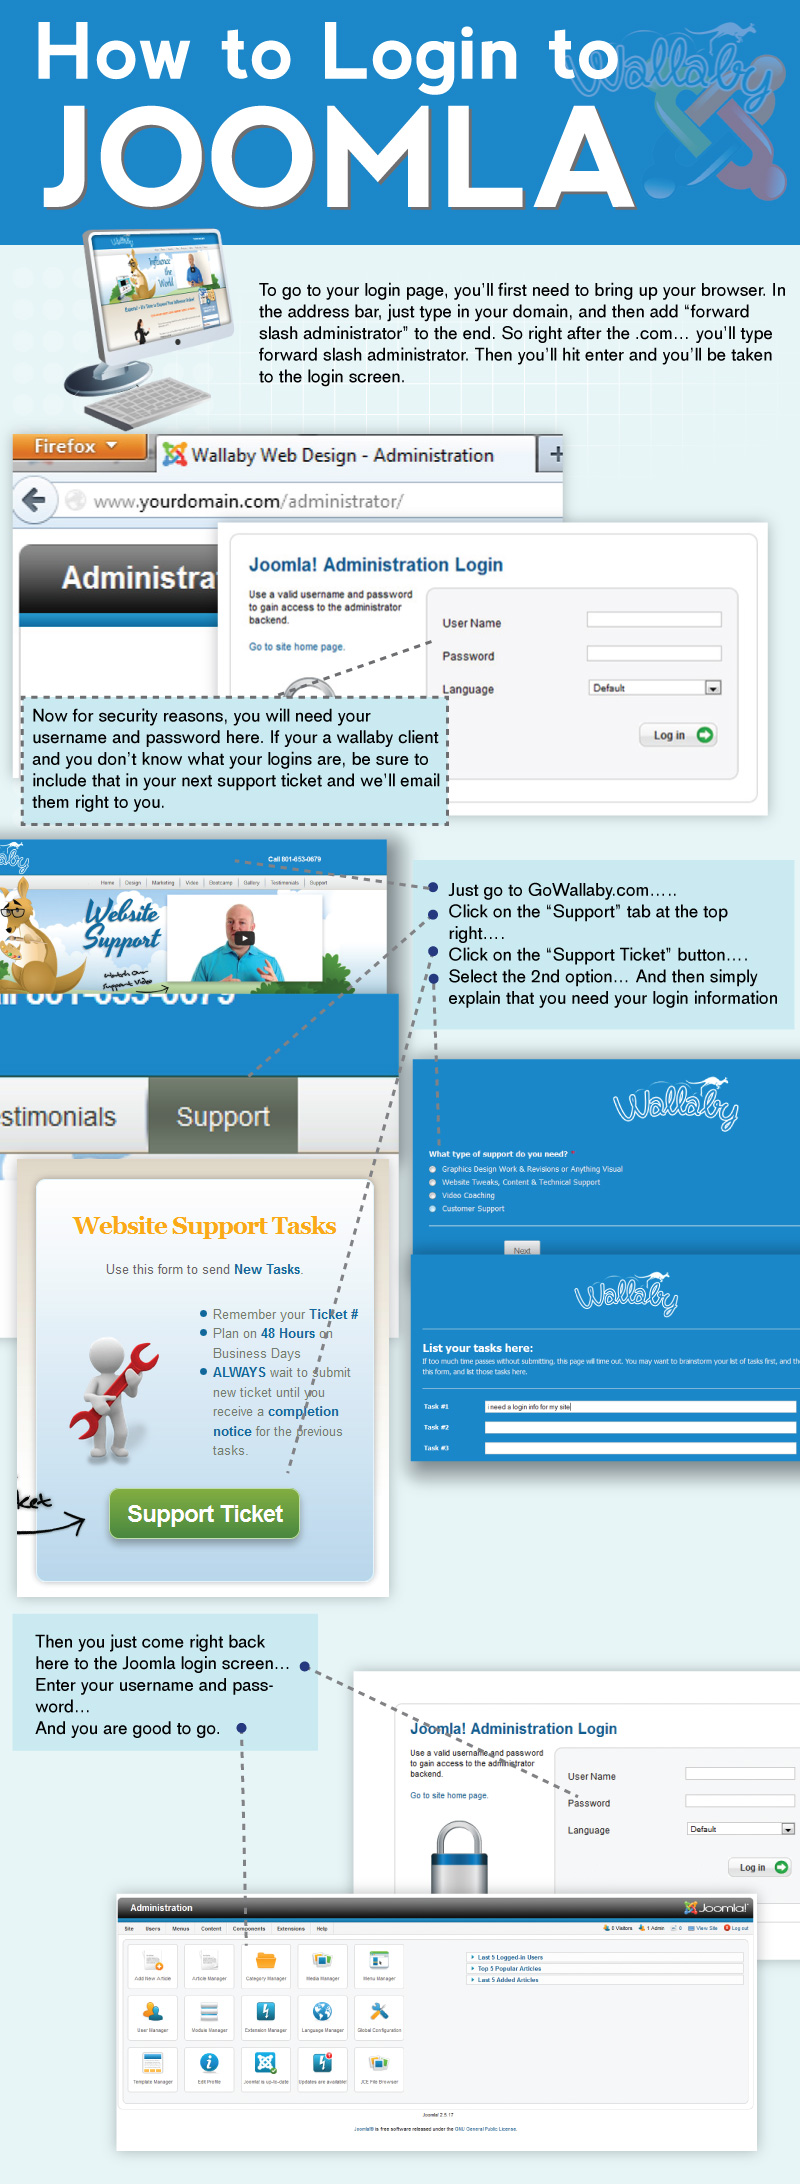 How to Login to Joomla | Go Wallaby